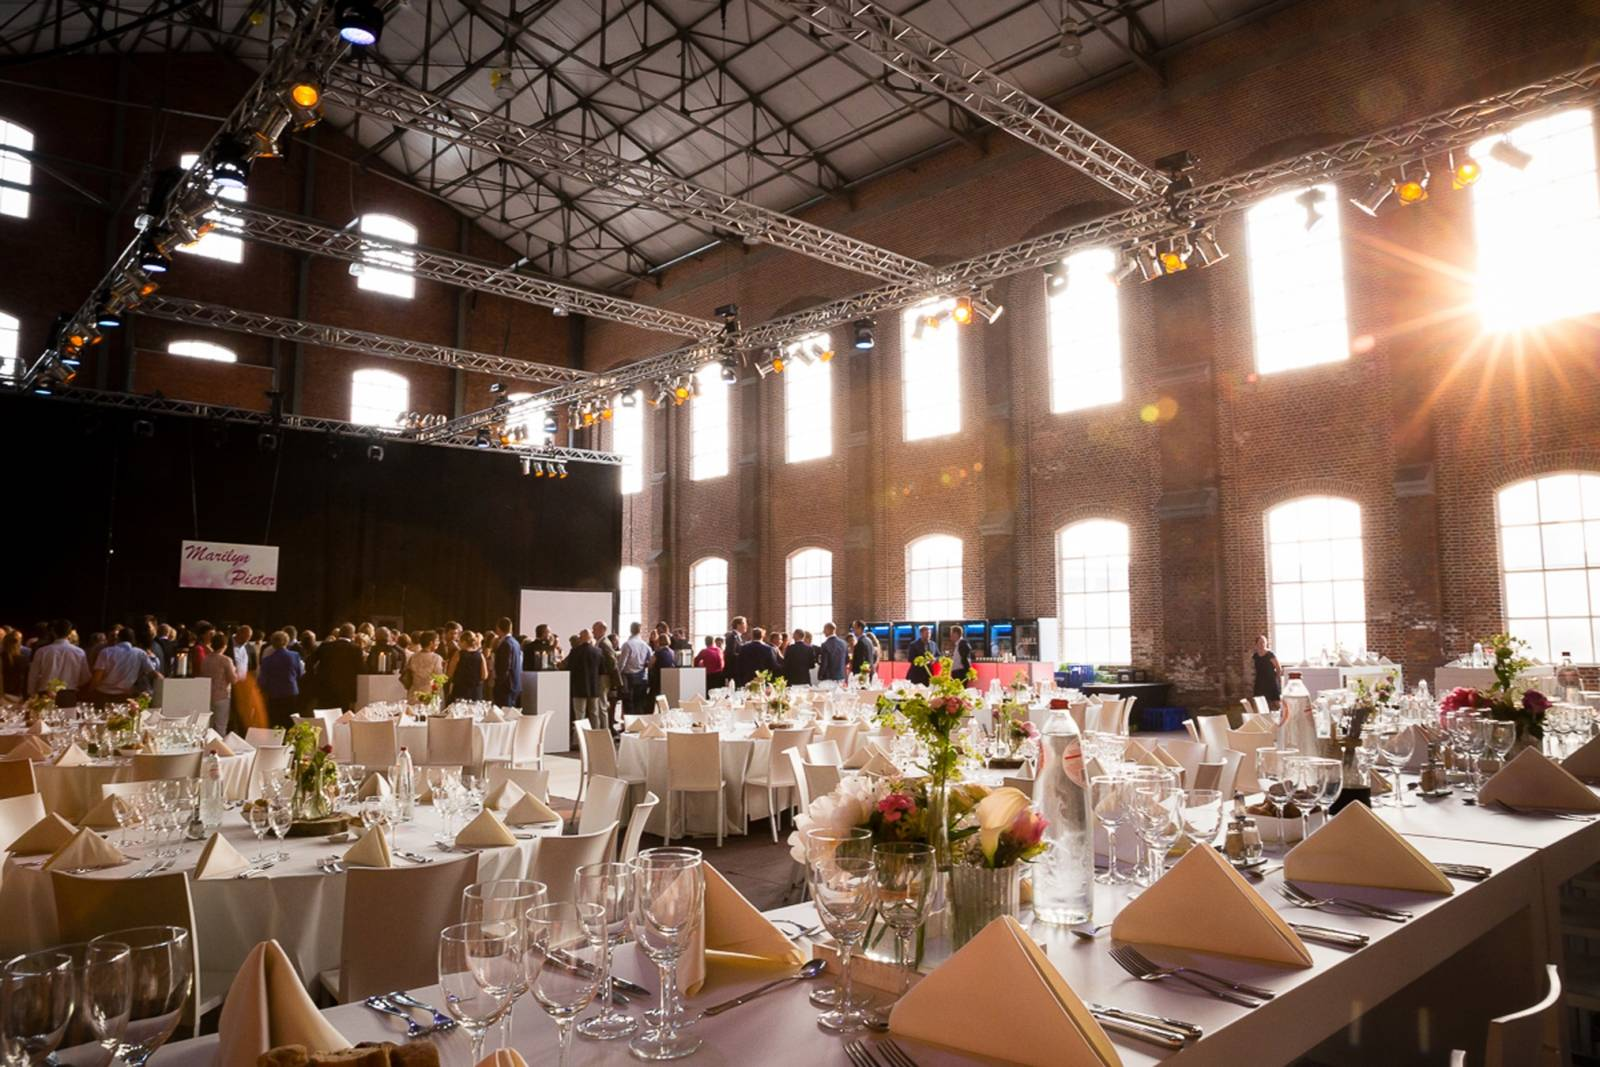 Hangar 43 - Feestzaal Oost-Vlaanderen - Industrieel - House of Weddings - 12